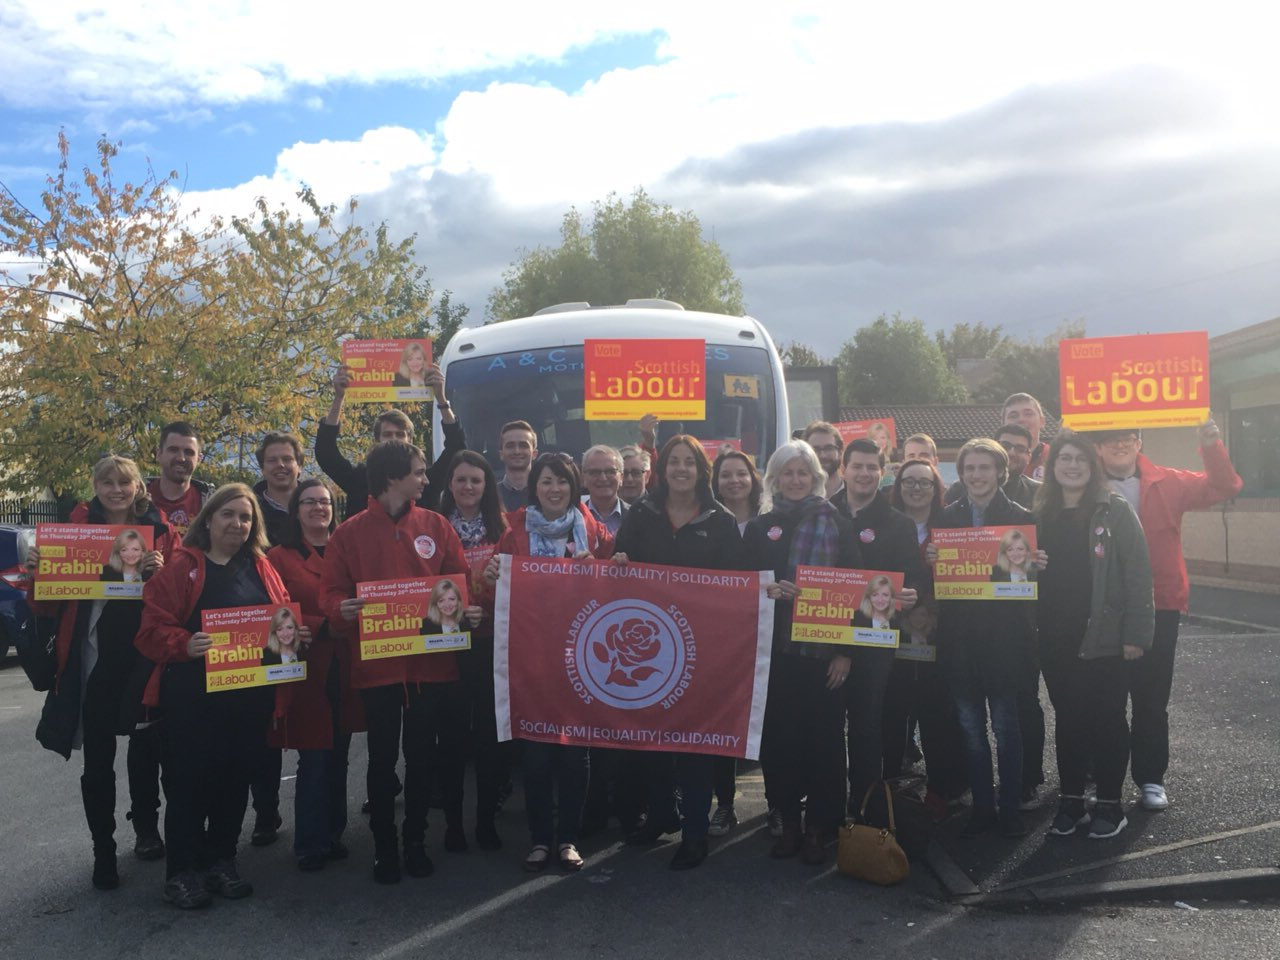 Thumbnail for #Batleybus-Scottish Labour on tour...